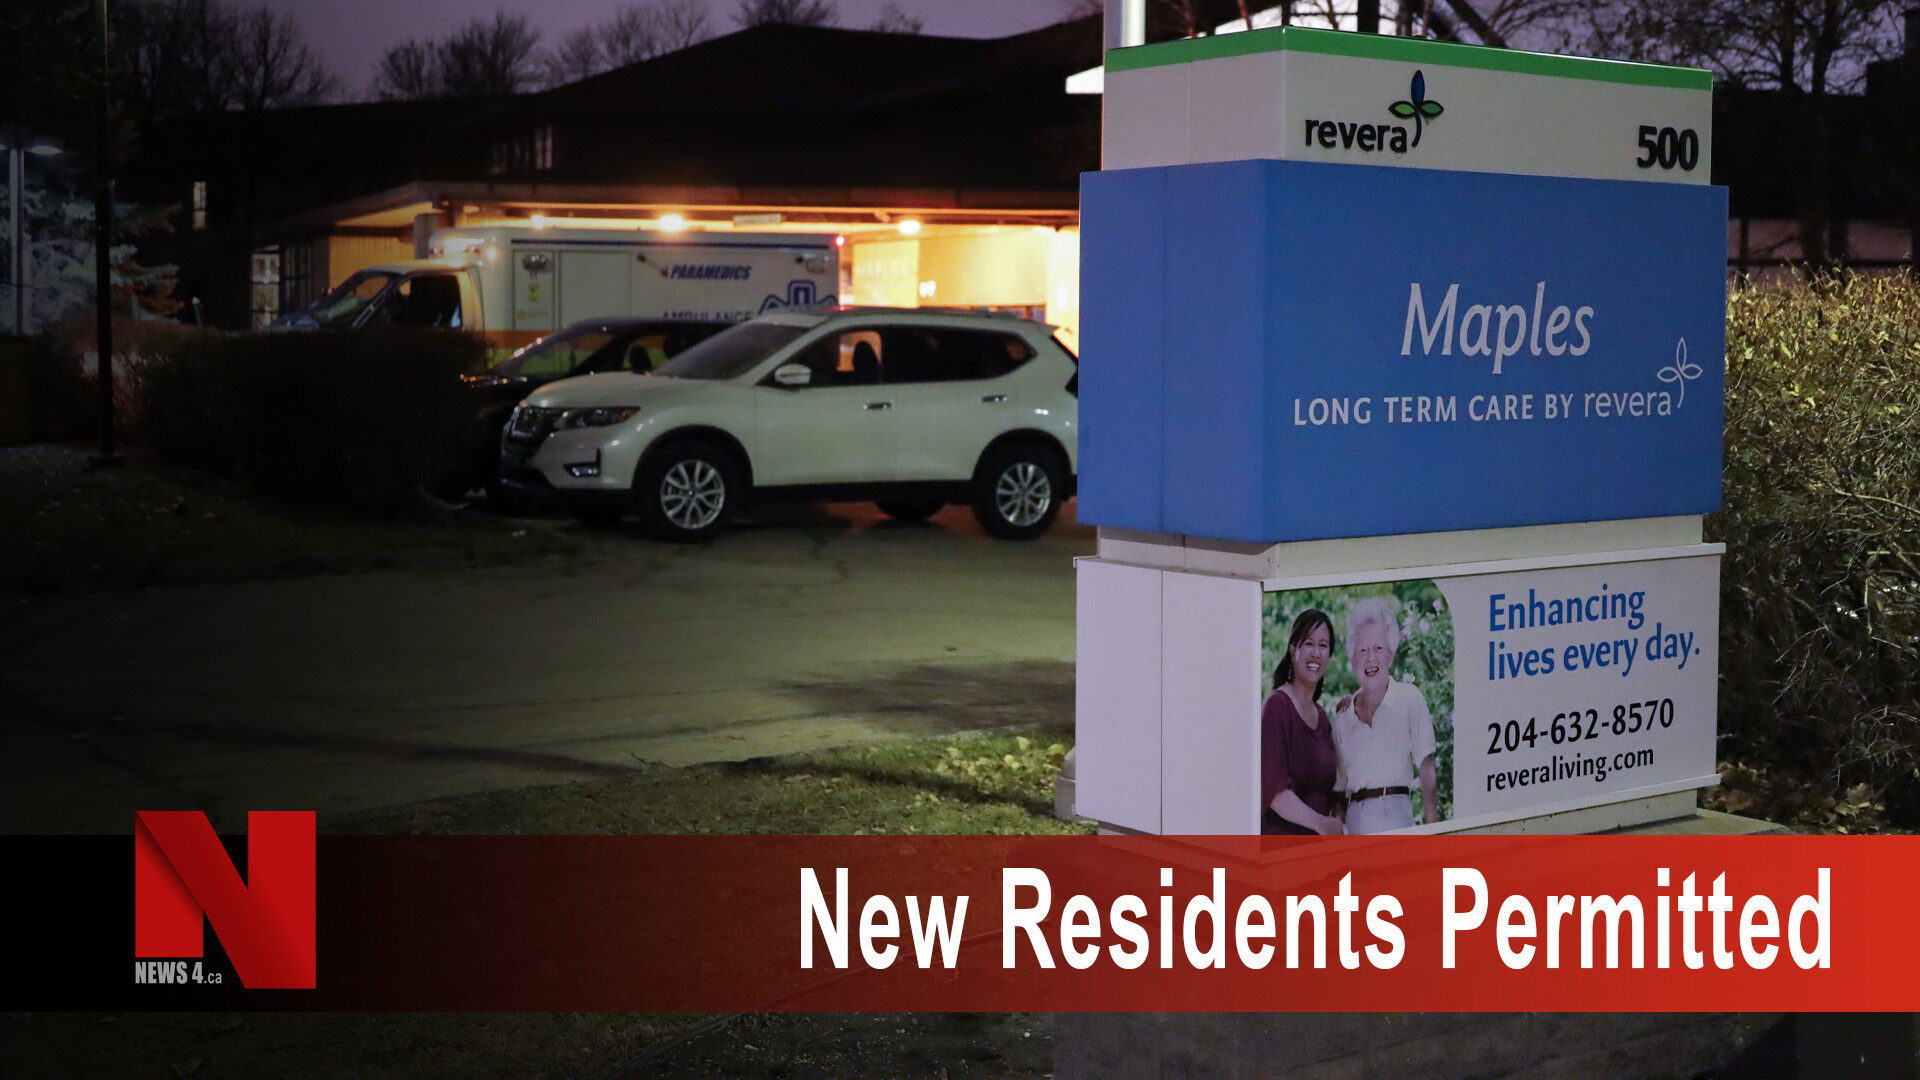 New residents permitted